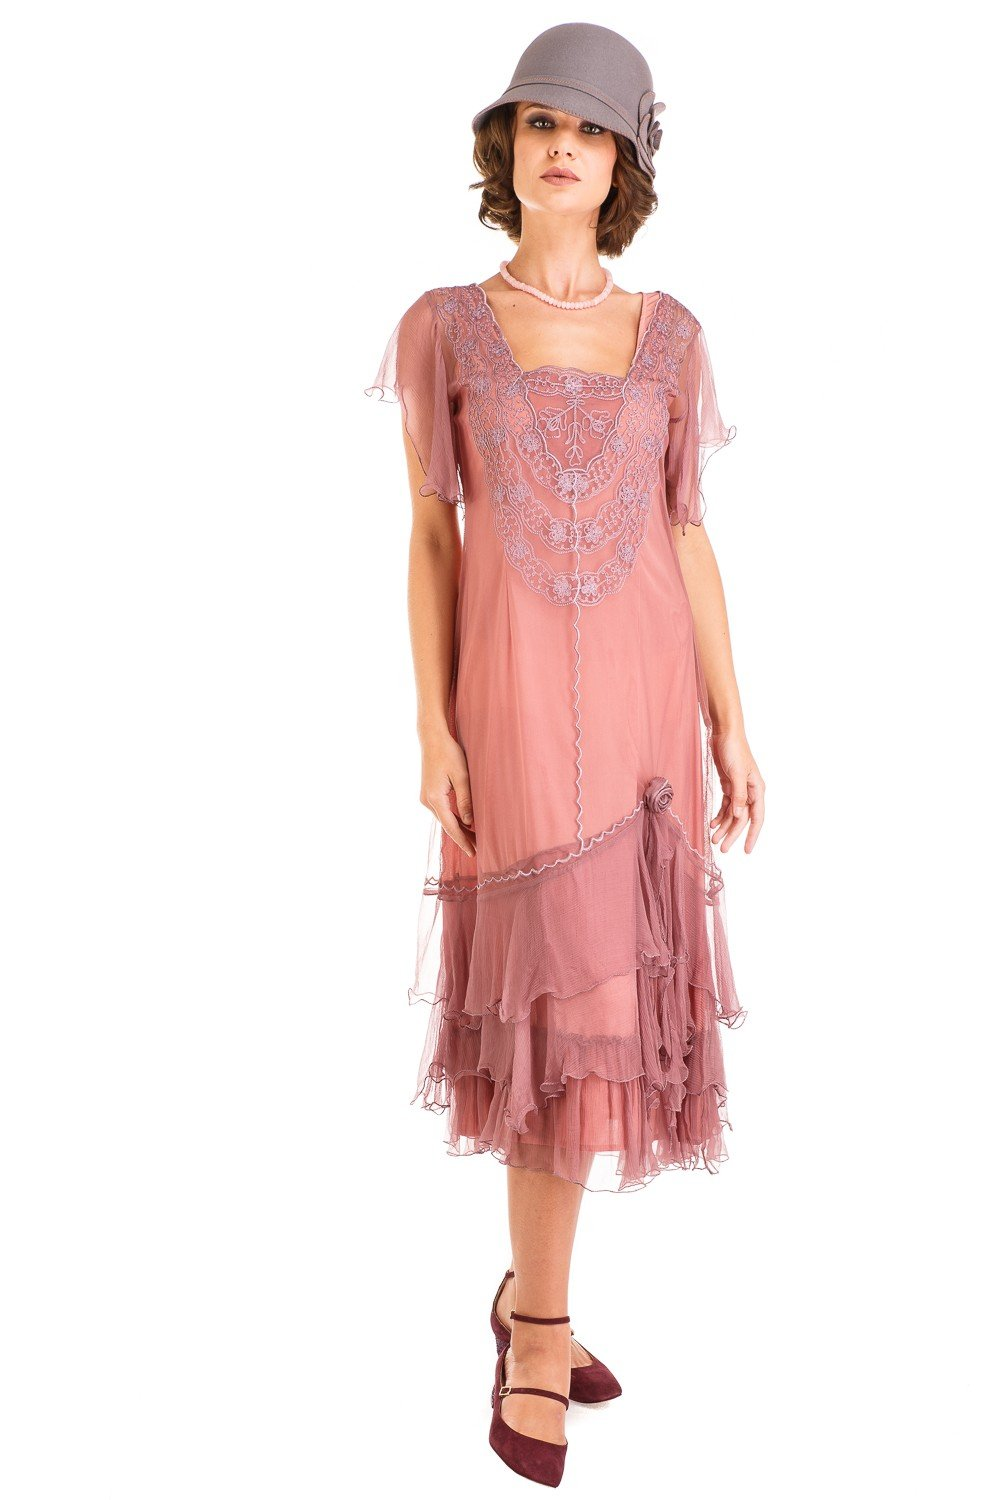 1920s Fashion & Clothing | Roaring 20s Attire Alexa 1920s Flapper Style Dress in Mauve by Nataya $250.00 AT vintagedancer.com